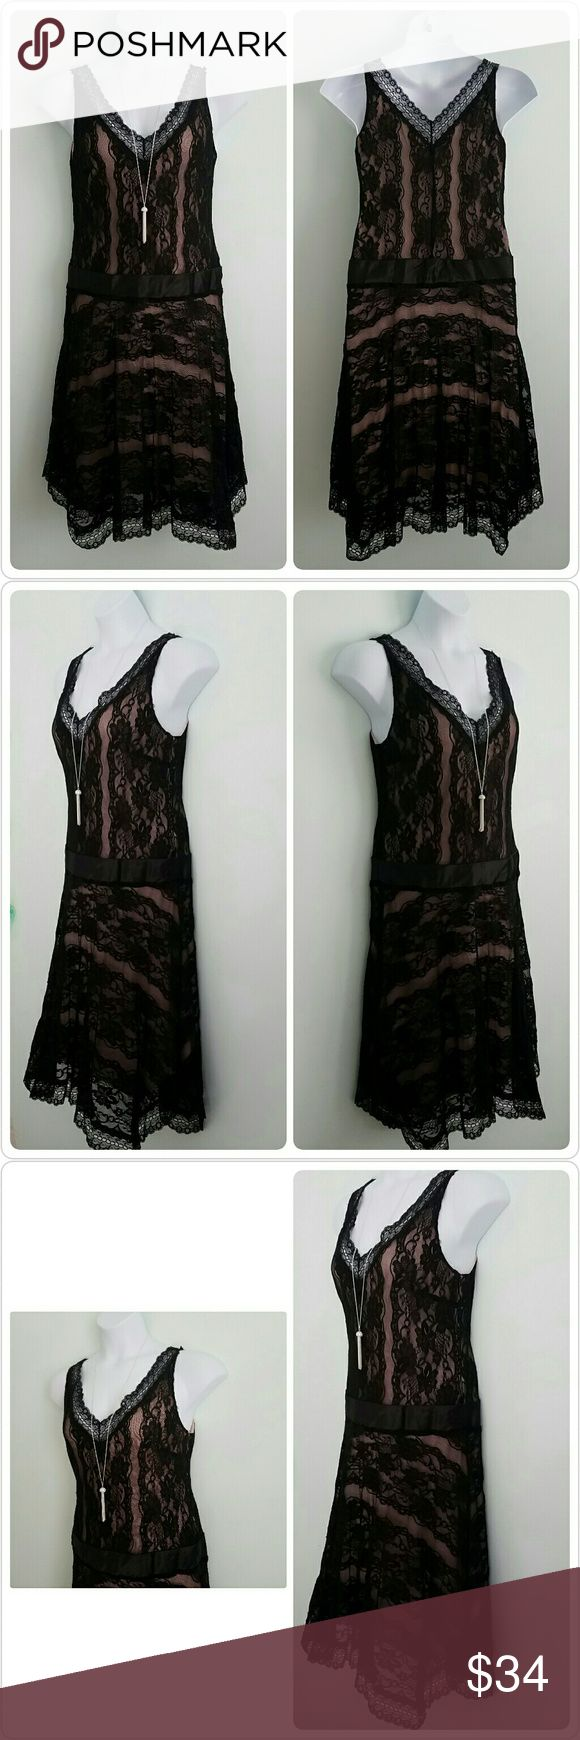 🆕Romantic Black Beauty Lace Petite Party Dress Brand: Believe Petite  Size: 10P Condition: Excellent preloved, no issues Color: Black Lined: Yes with light rose color lining Sleeve Style: Sleeveless  Occasion: Party or Special Occasion  Dress Length: Knee or below  Material: 92% Nylon and 8% Spandex  Machine Washable: Handwash  Zipper: Side zipper closure  Bust: 17 Waist: 18 Hips: 22 Length: 43 Special features: Beautiful romantic lace style  Please let me know if you have any questions…